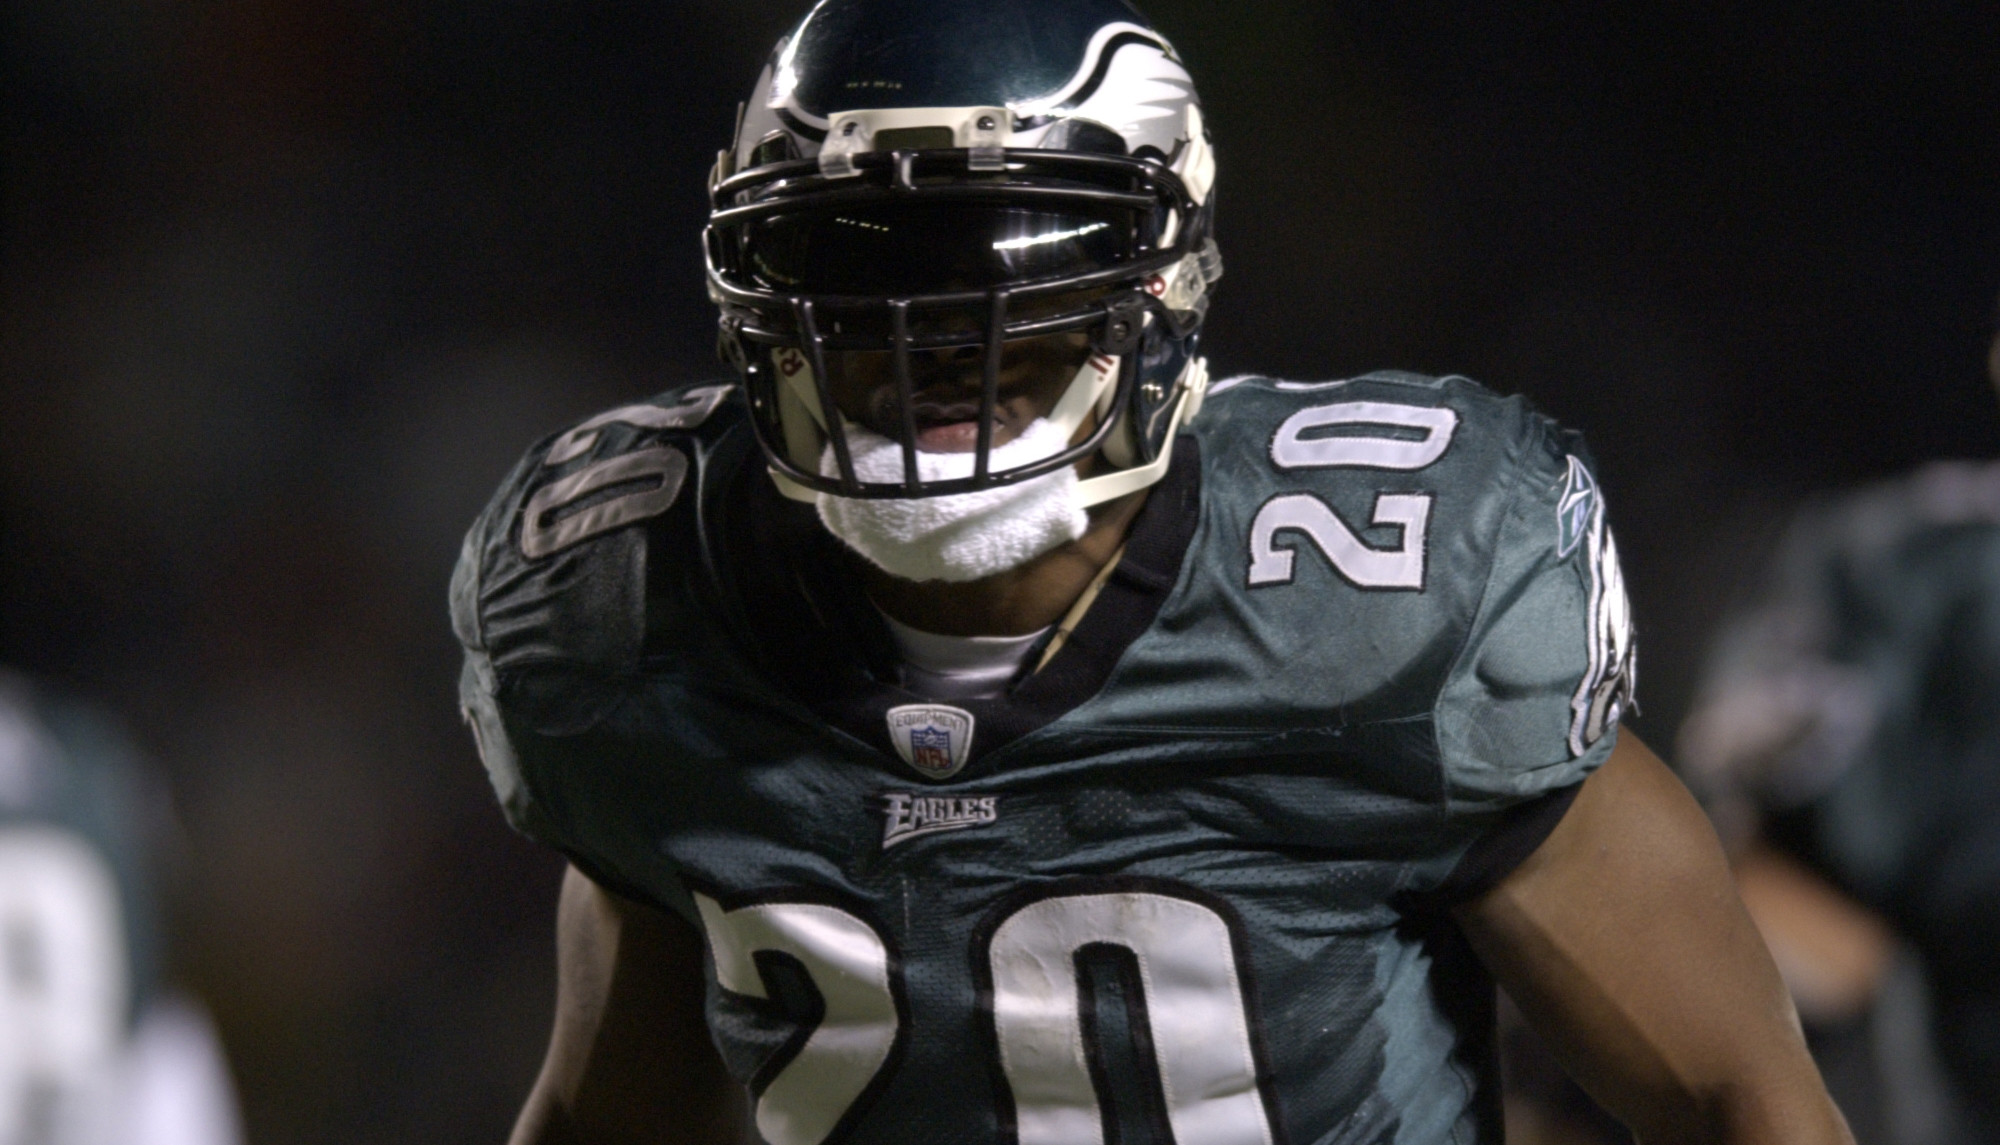 Brian Dawkins: Greatest Living Eagle